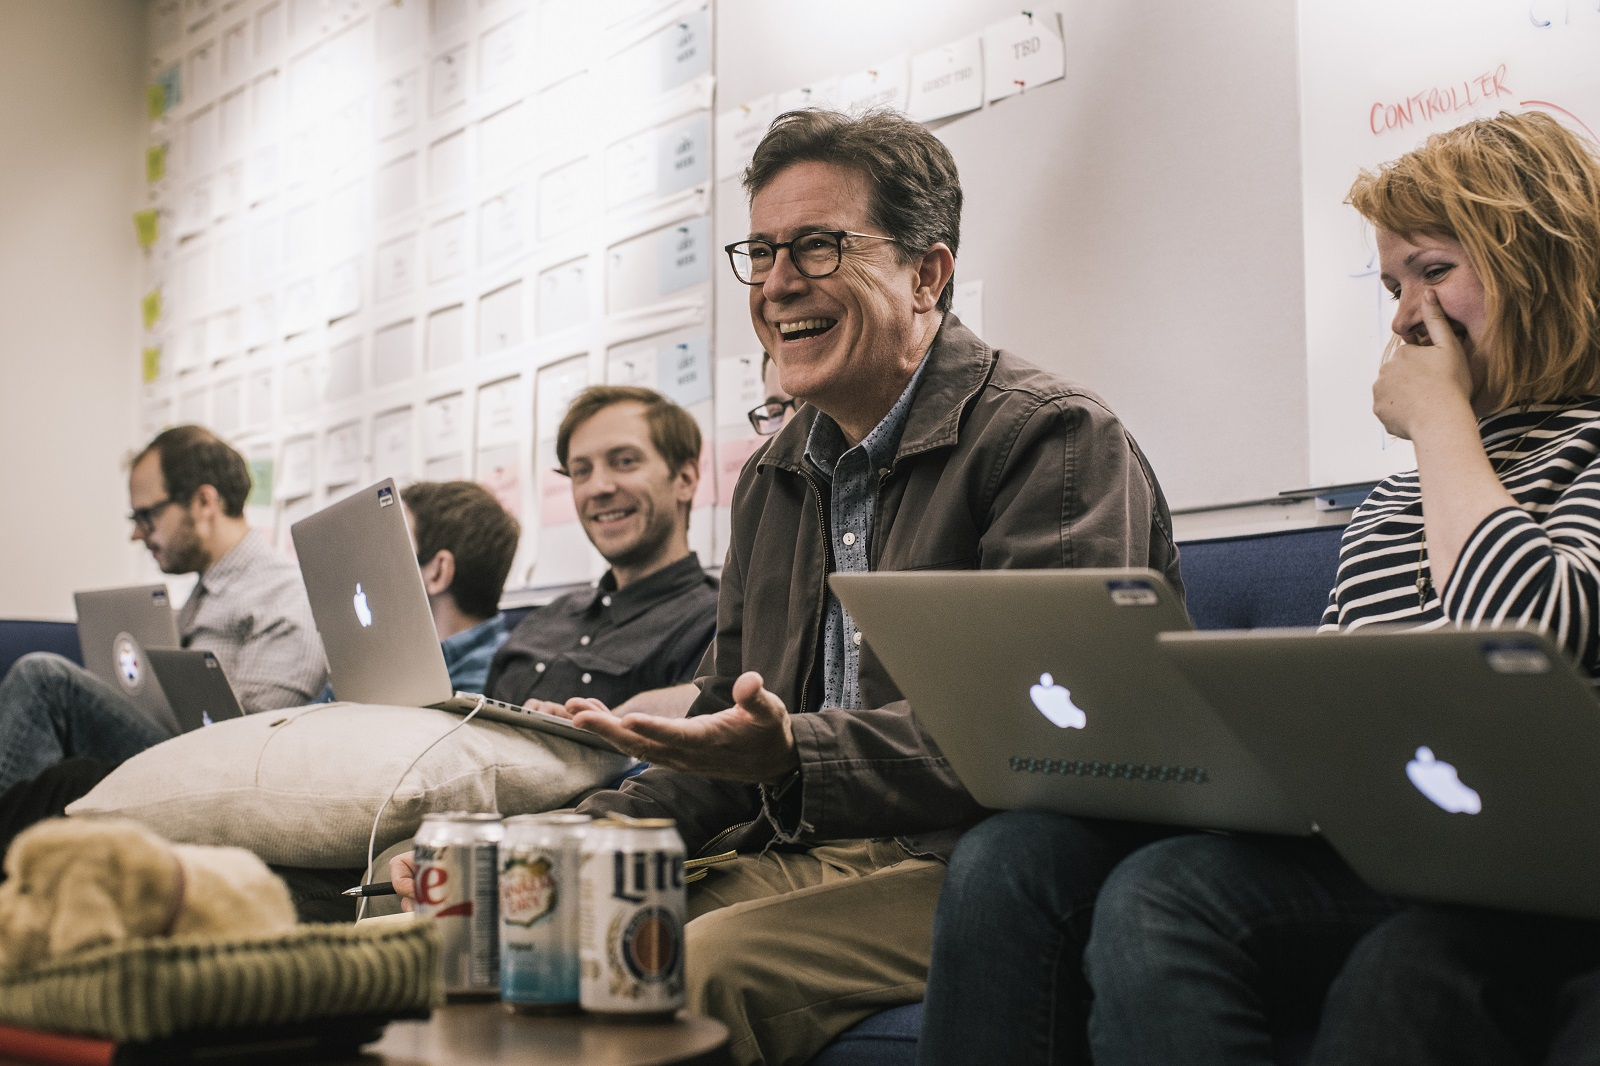 Stephen Colbert and the 'Late Show' writers watch the first debate between Hillary Clinton and Donald Trump. The Trump presidency has been a boon to Colbert's ratings. (Christopher Gregory/The New York Times)